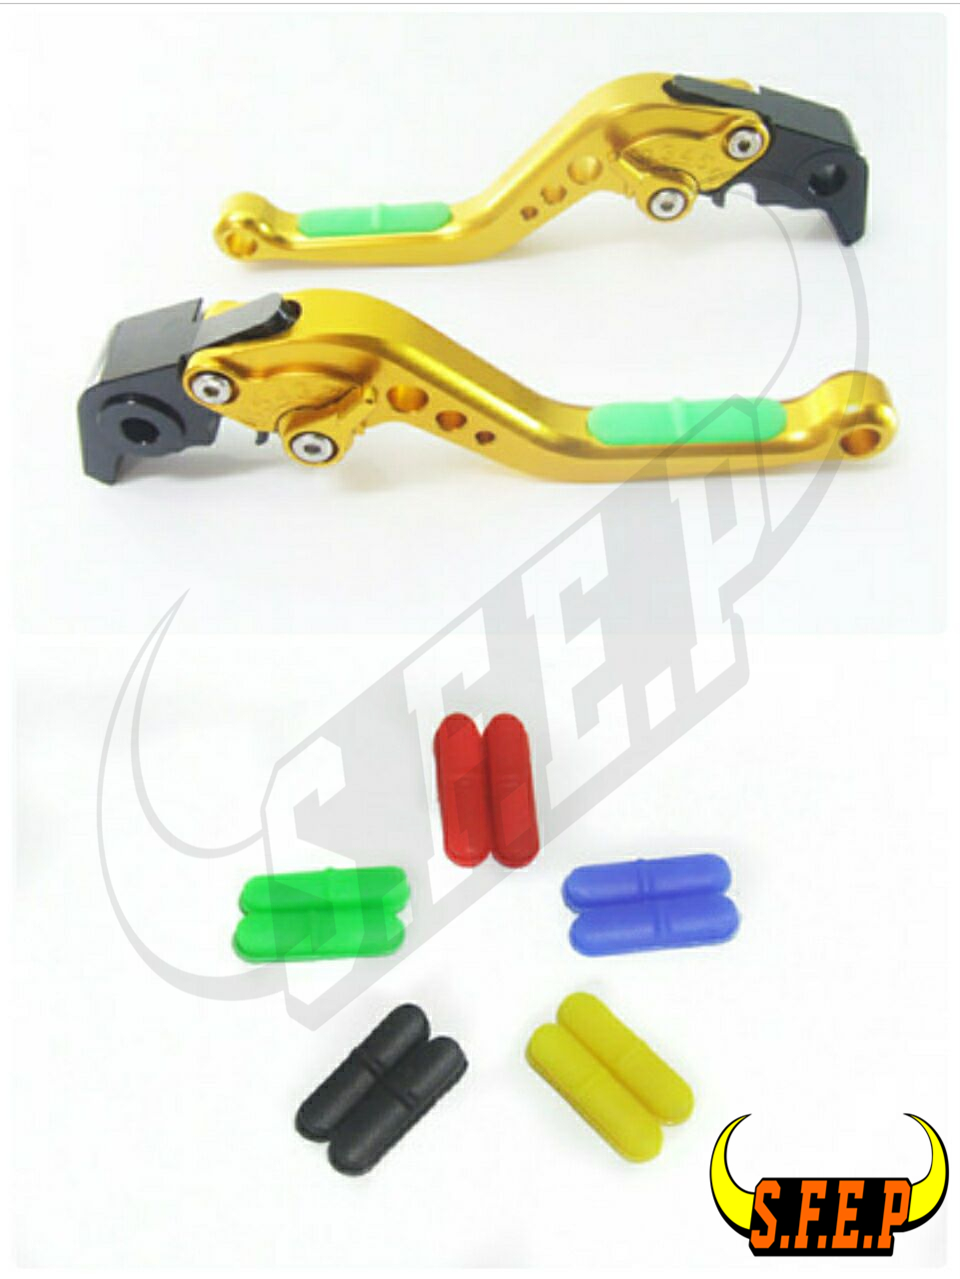 CNC Adjustable Motorcycle Brake and Clutch Levers with Anti-Slip For Triumph SCRAMBLER. 2006-2016